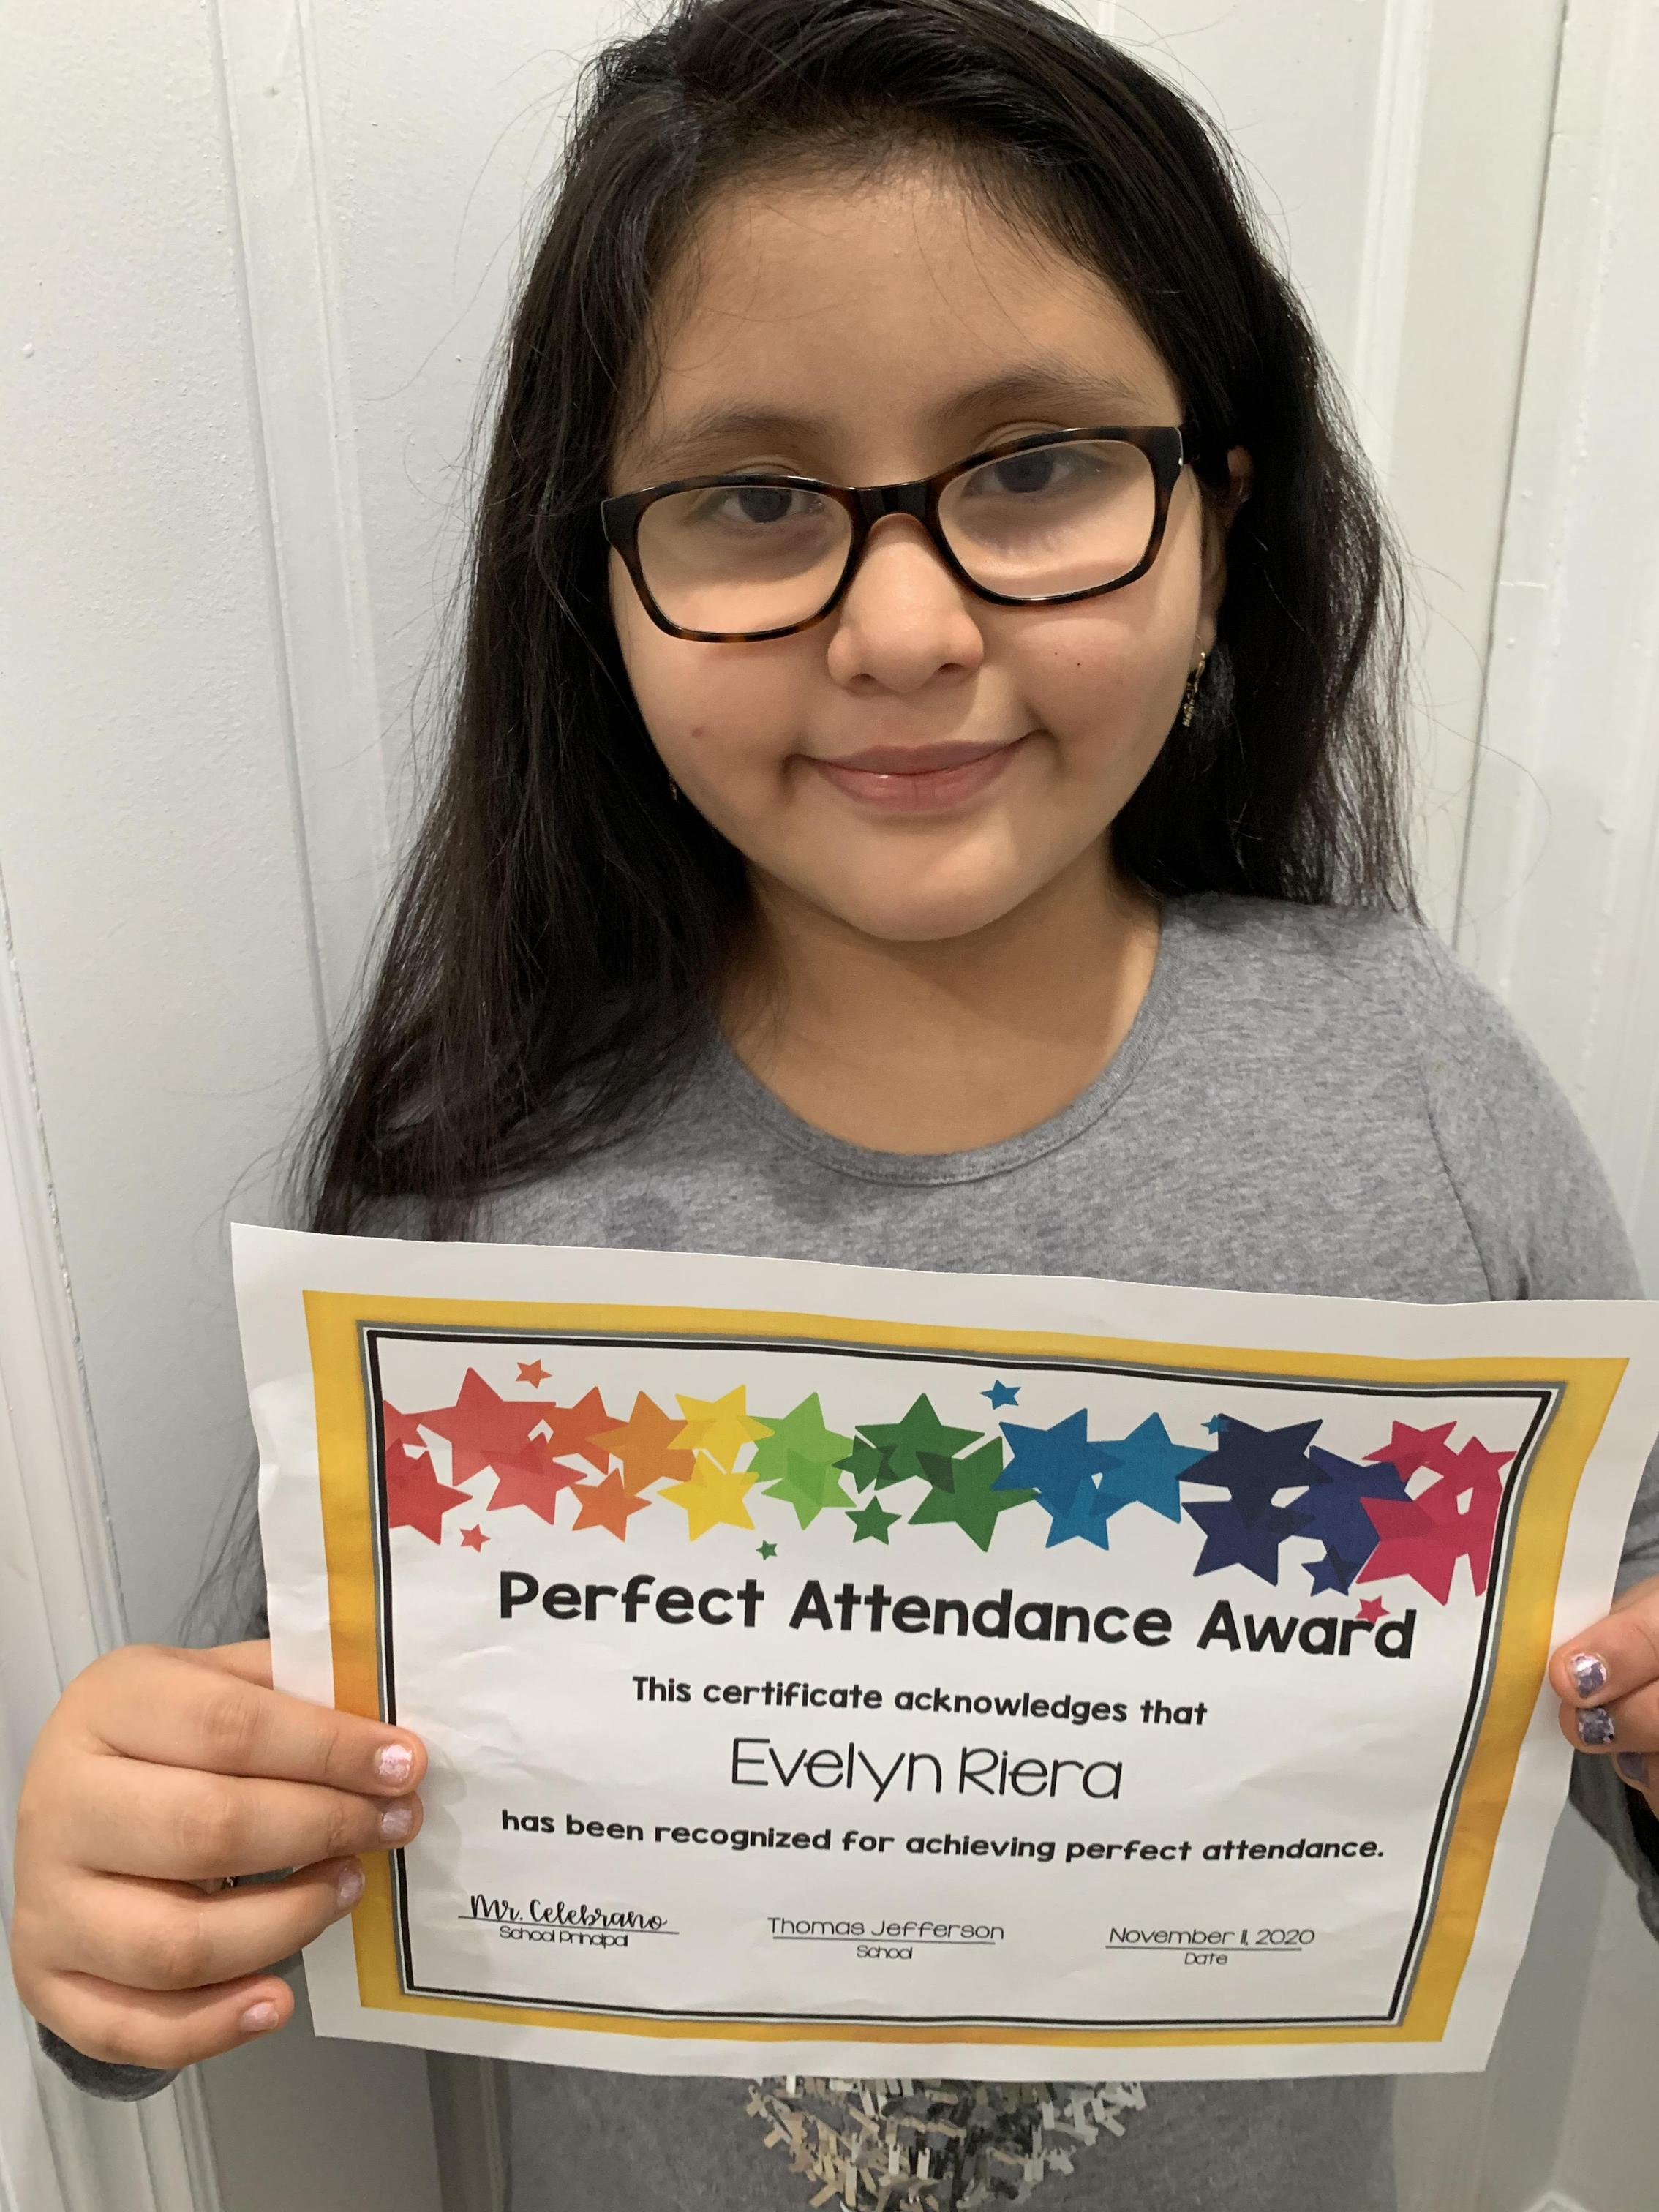 Evelyn Rivera holding perfect attendance certificate